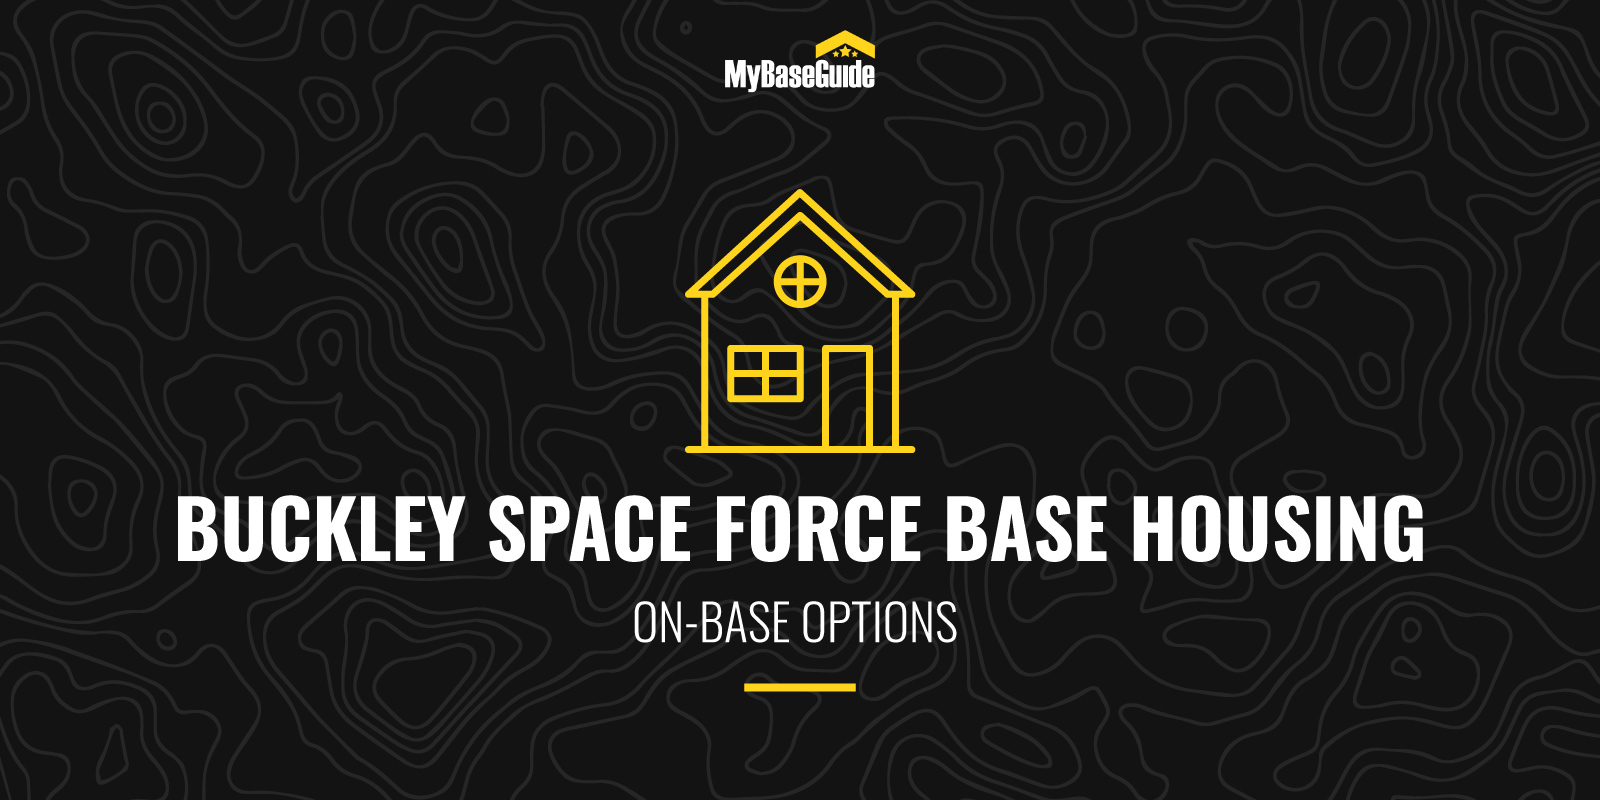 Buckley AFB On-Base Housing Options